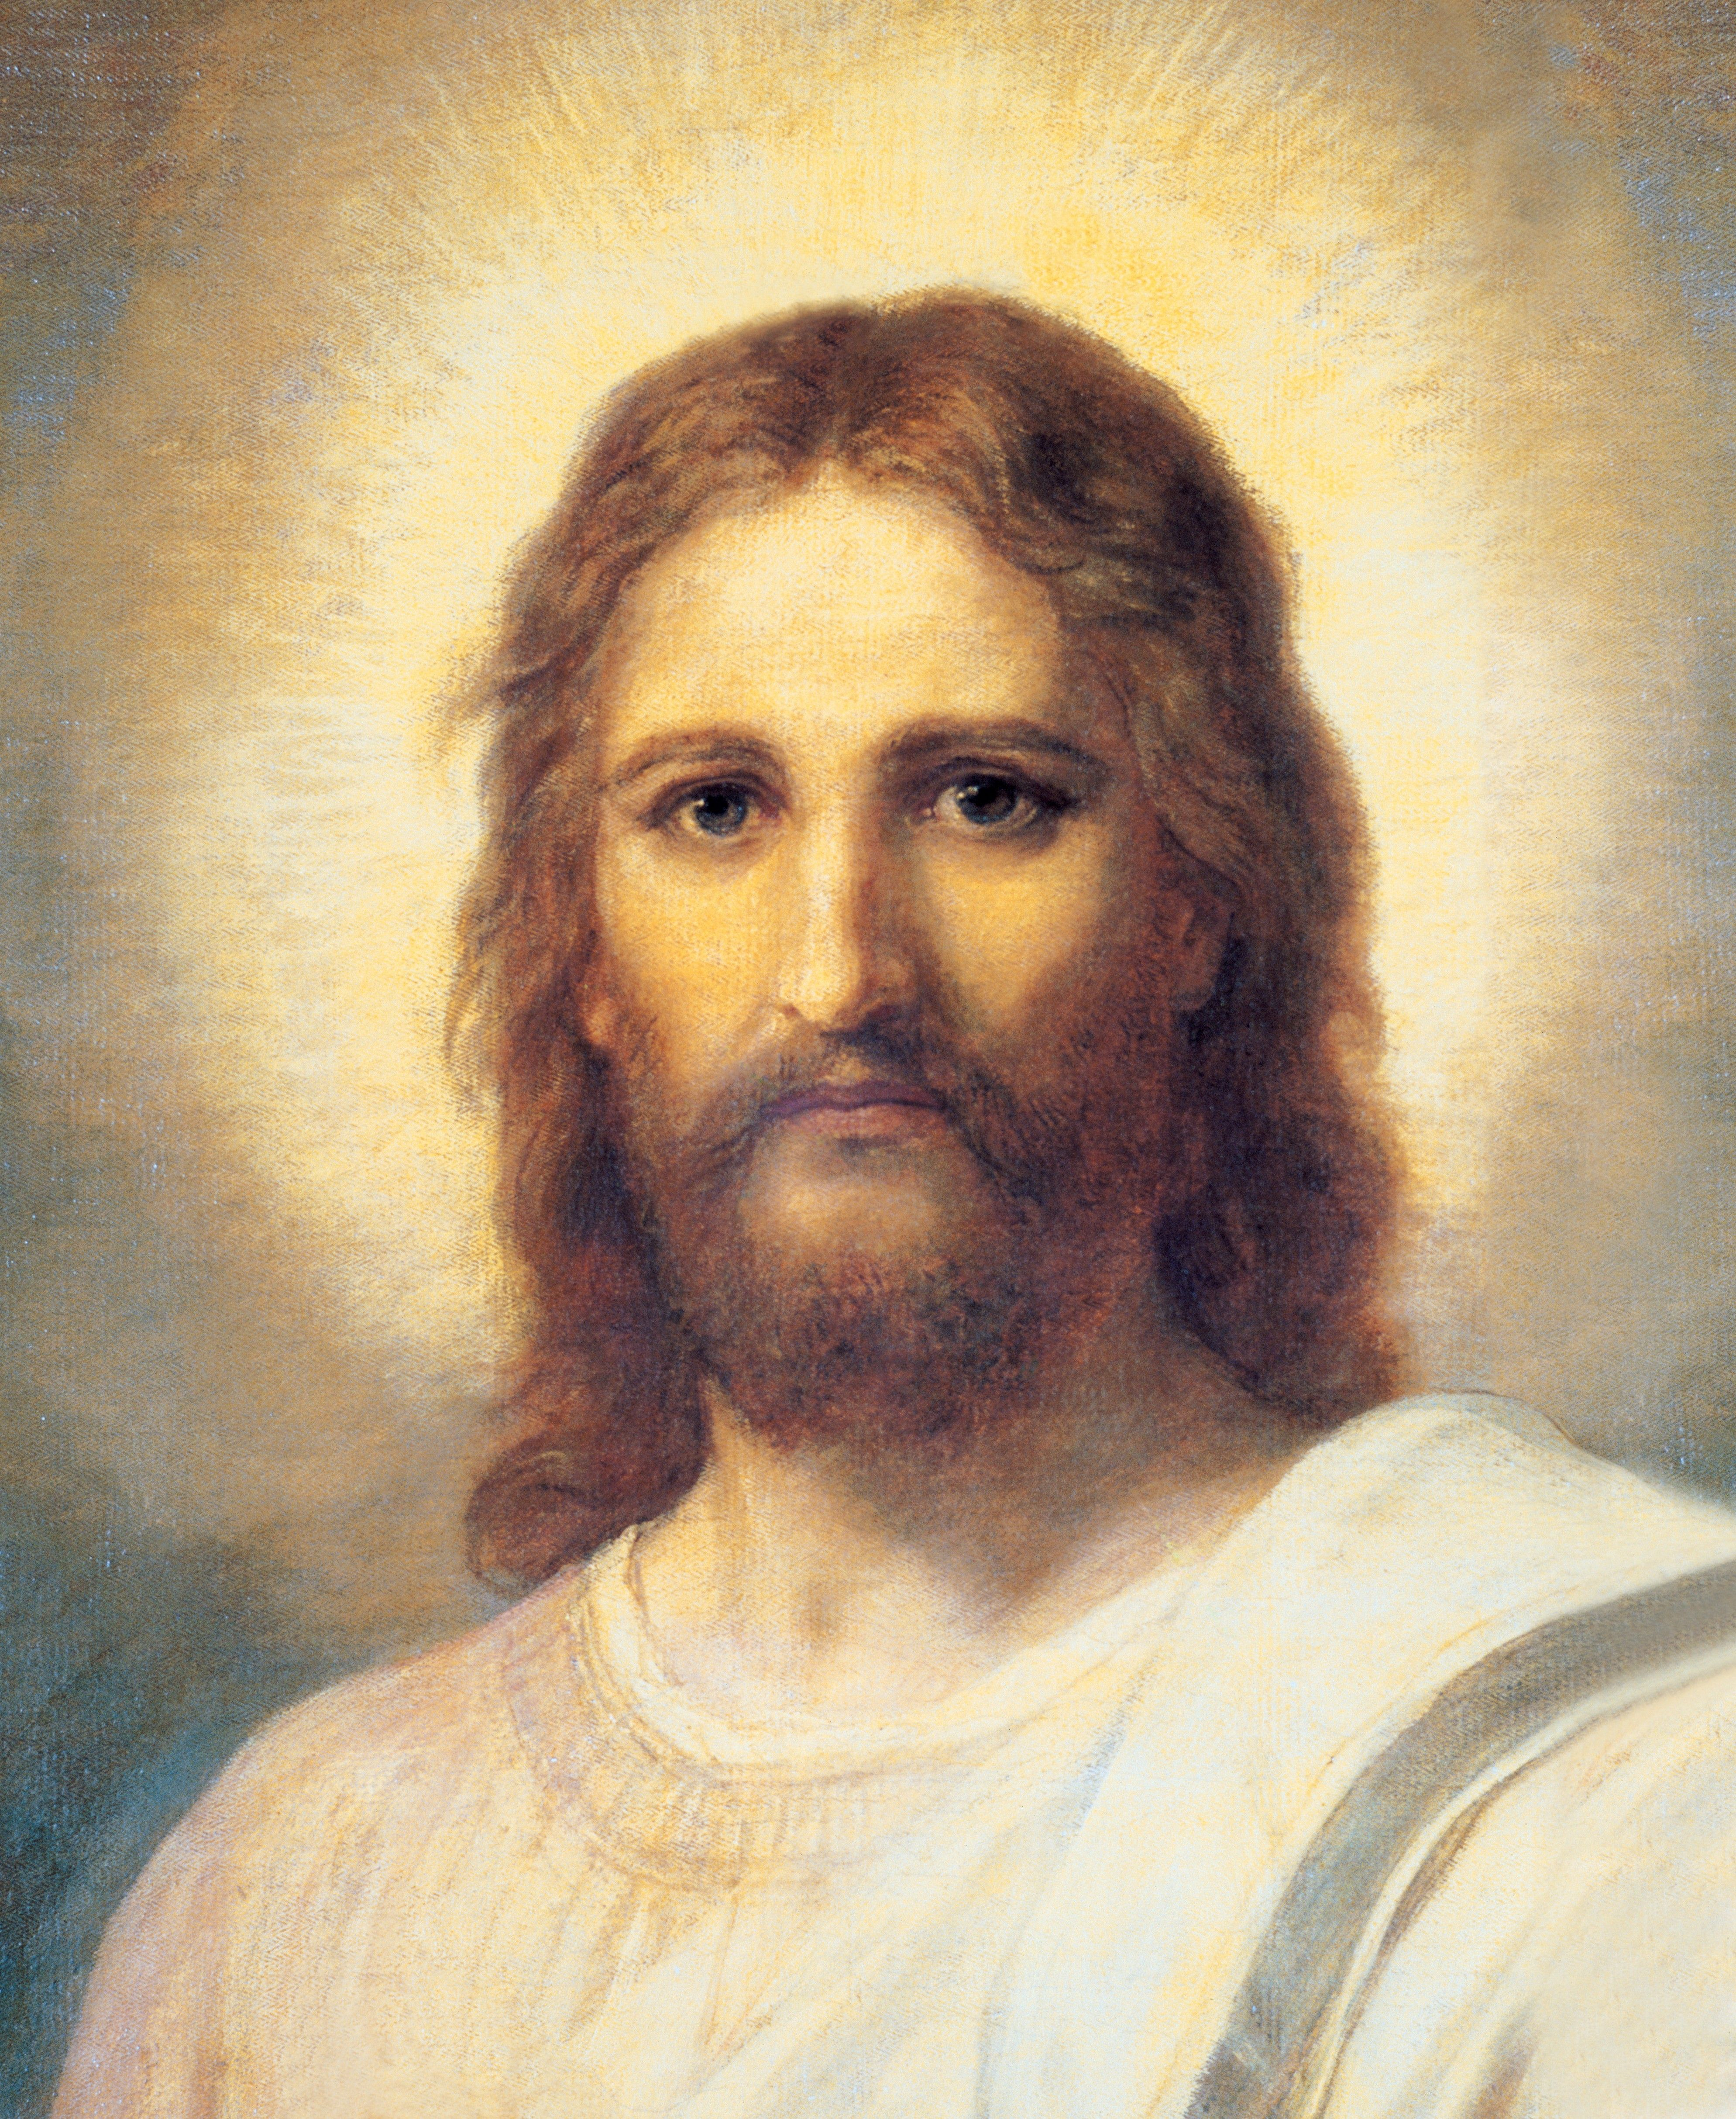 Christ's Image, by Heinrich Hofmann; GAB 1; Exodus 3:14; John 14:6; Mosiah 3:17; Helaman 5:12; 3 Nephi 9:14–18; Mormon 9:11; Doctrine and Covenants 38:1; 76:22–24, 40–42